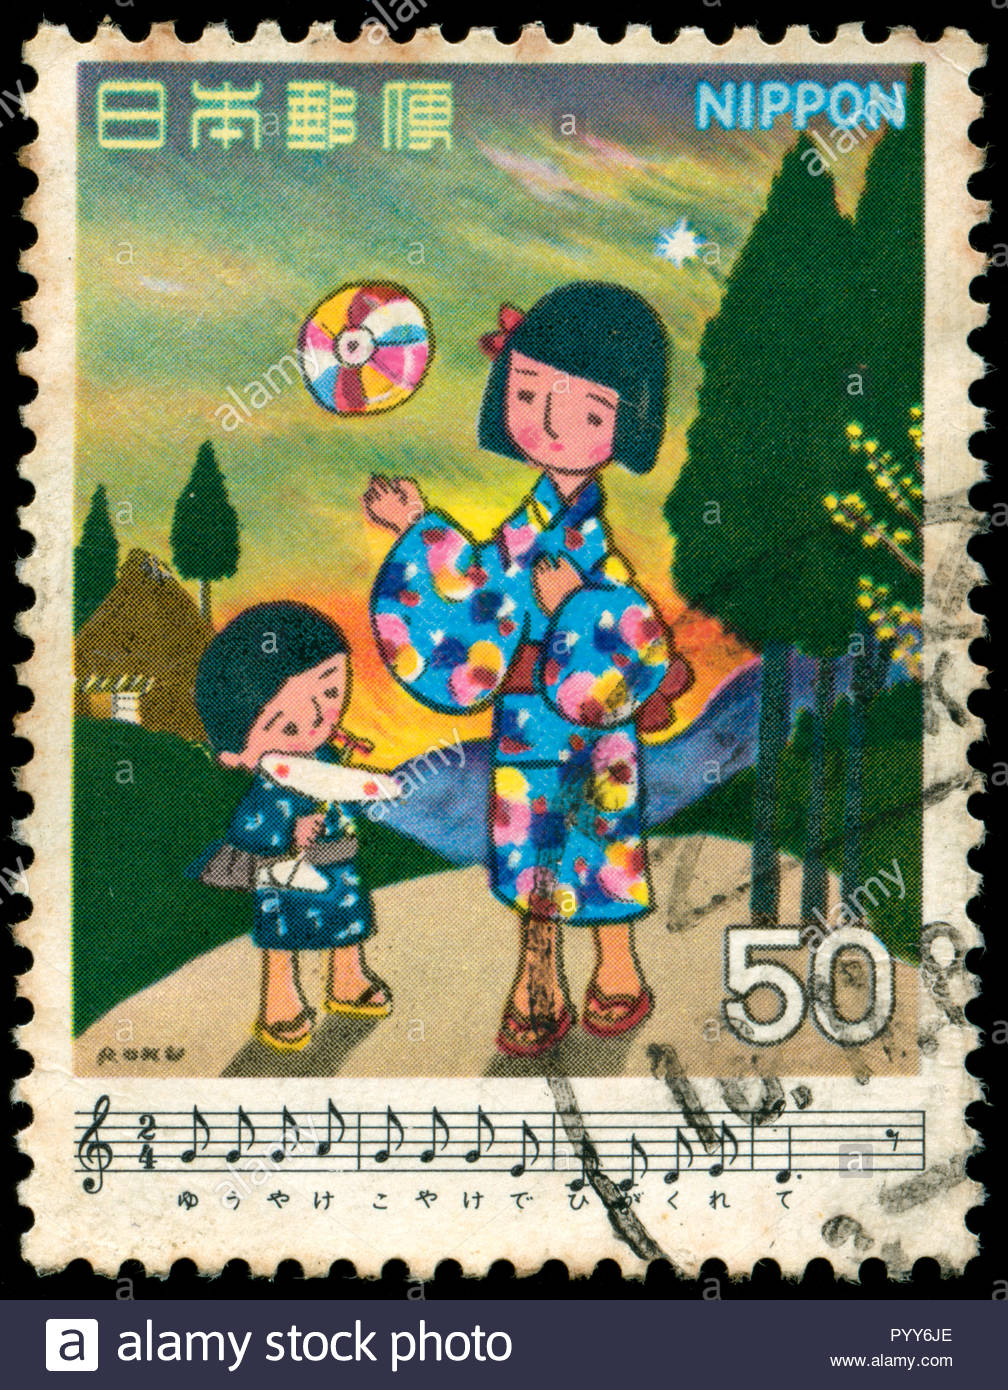 Postmarked stamp from Japan in the Japanese Songs (1st series) issued in 1979 - Stock Image